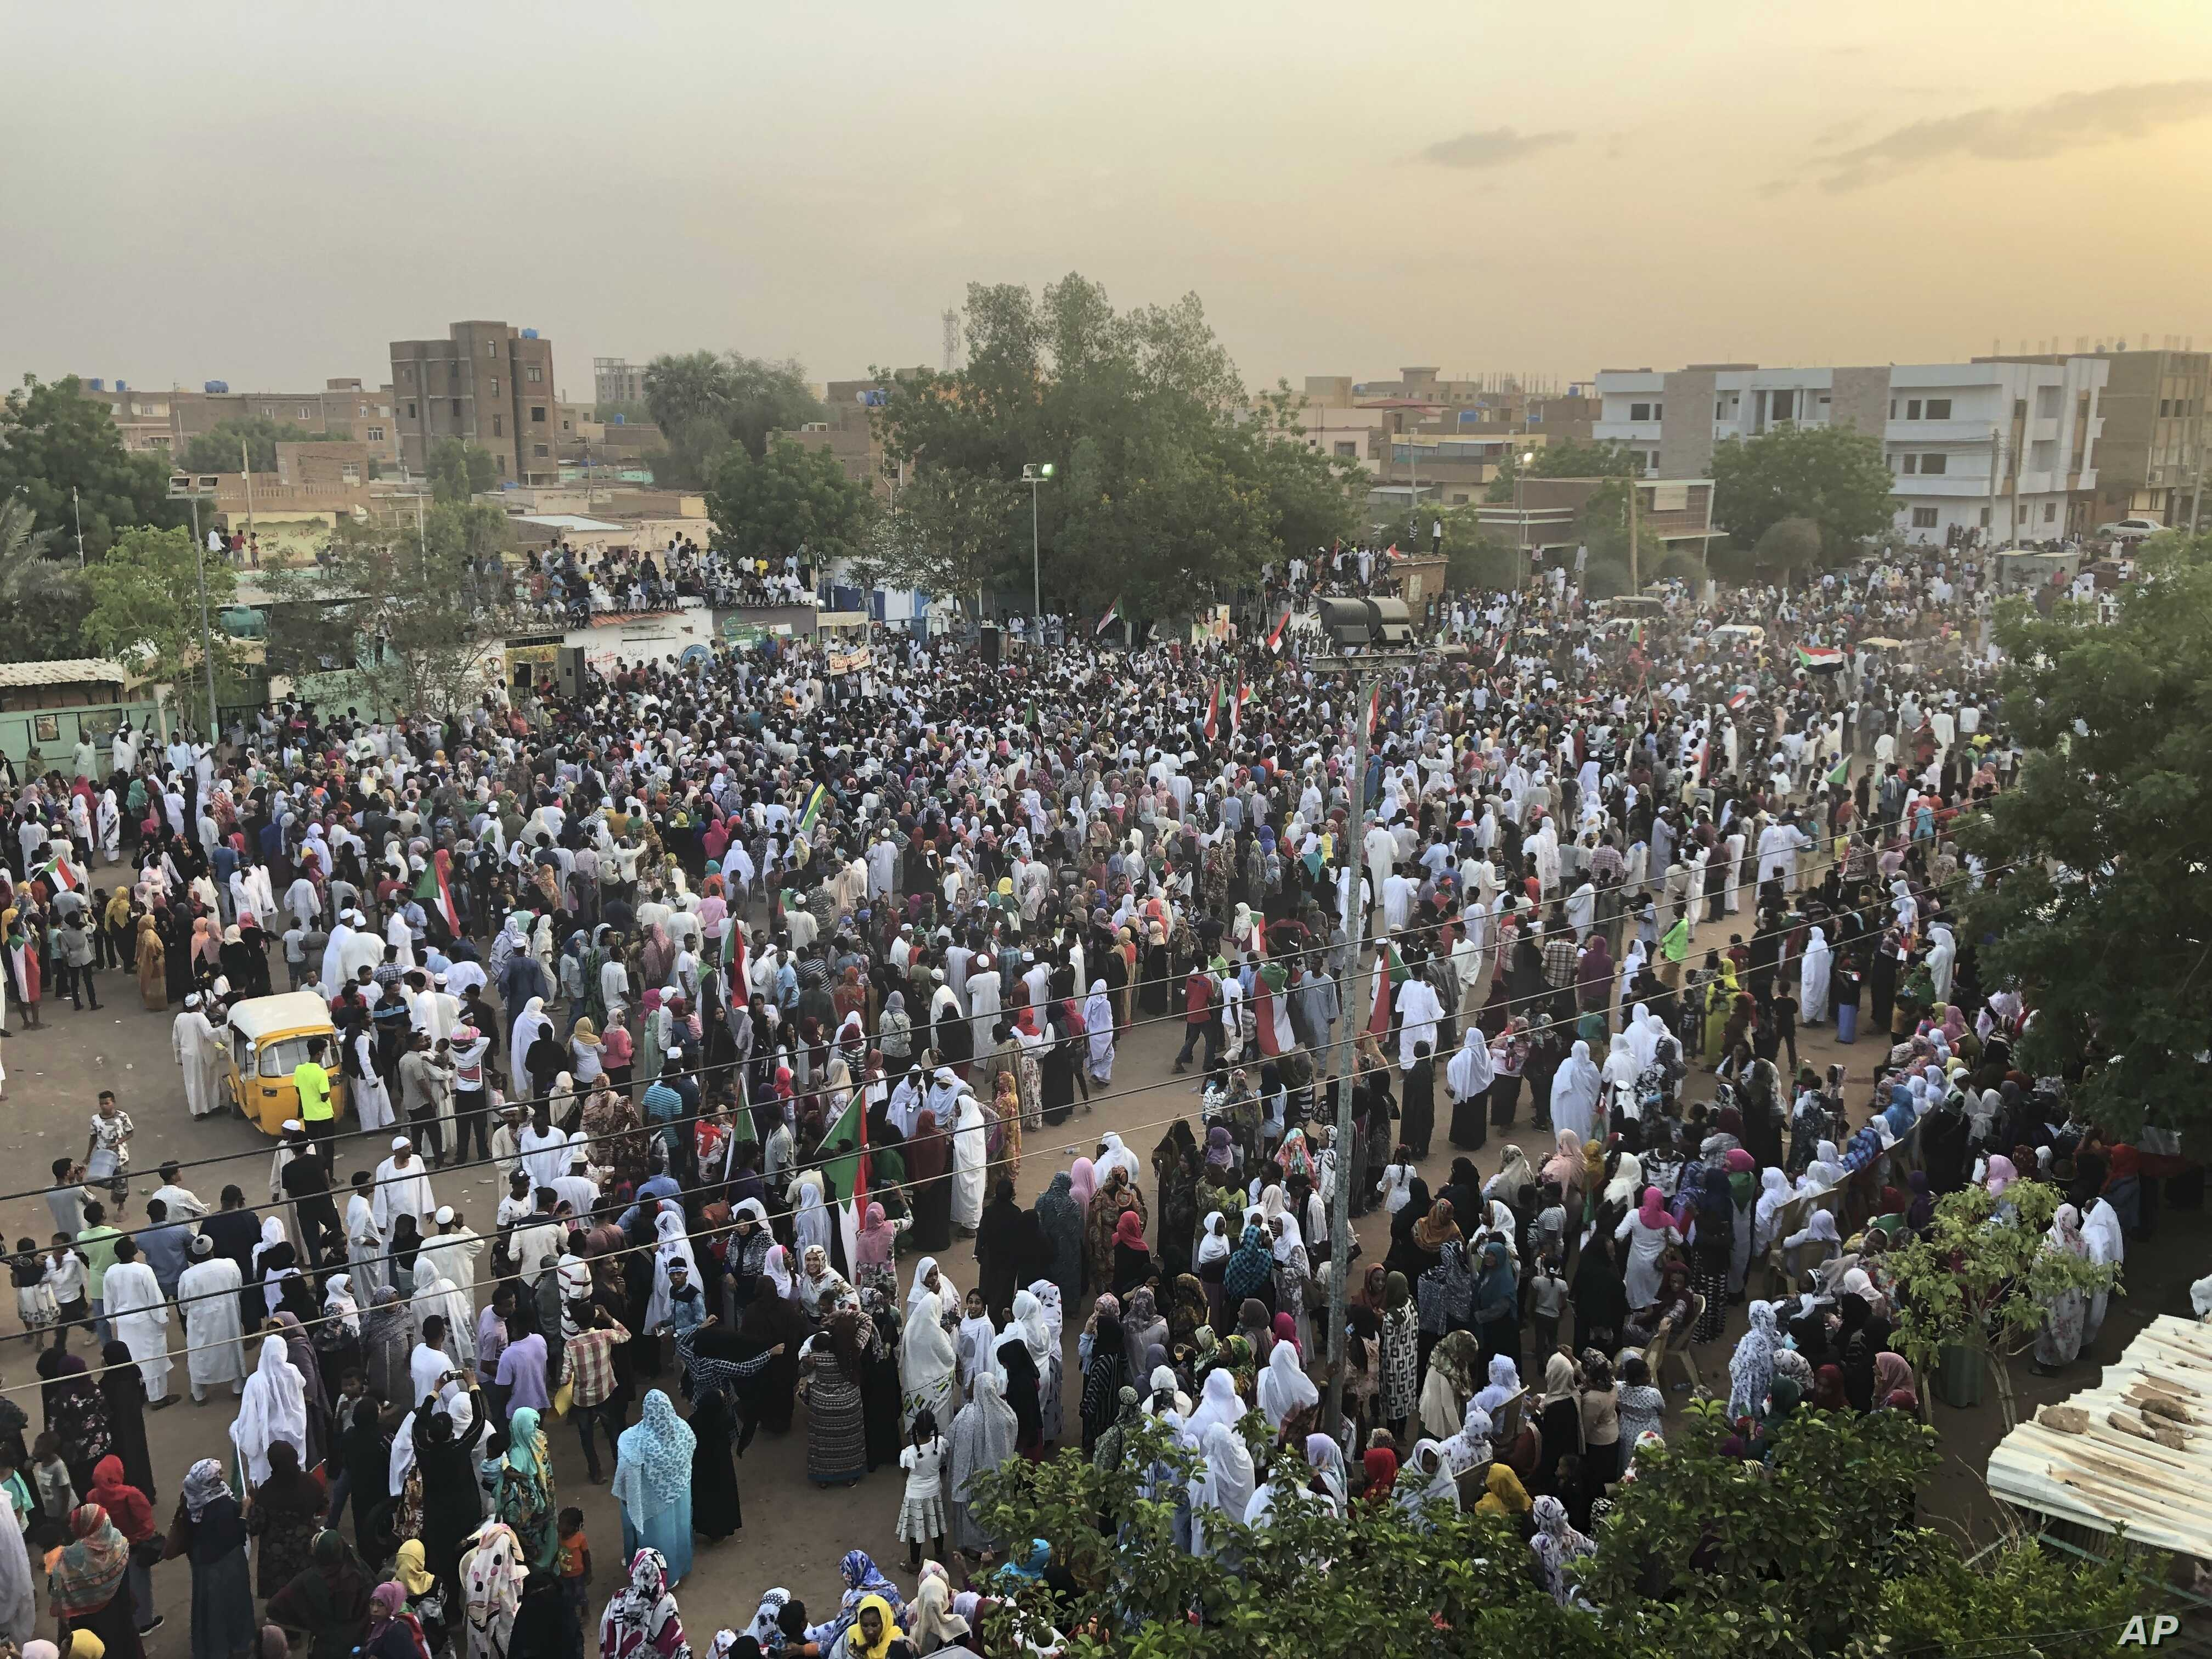 Sudanese people celebrate in the streets of Khartoum after ruling generals and protest leaders announced they have reached an agreement on the disputed issue of a new governing body on July 5, 2019.